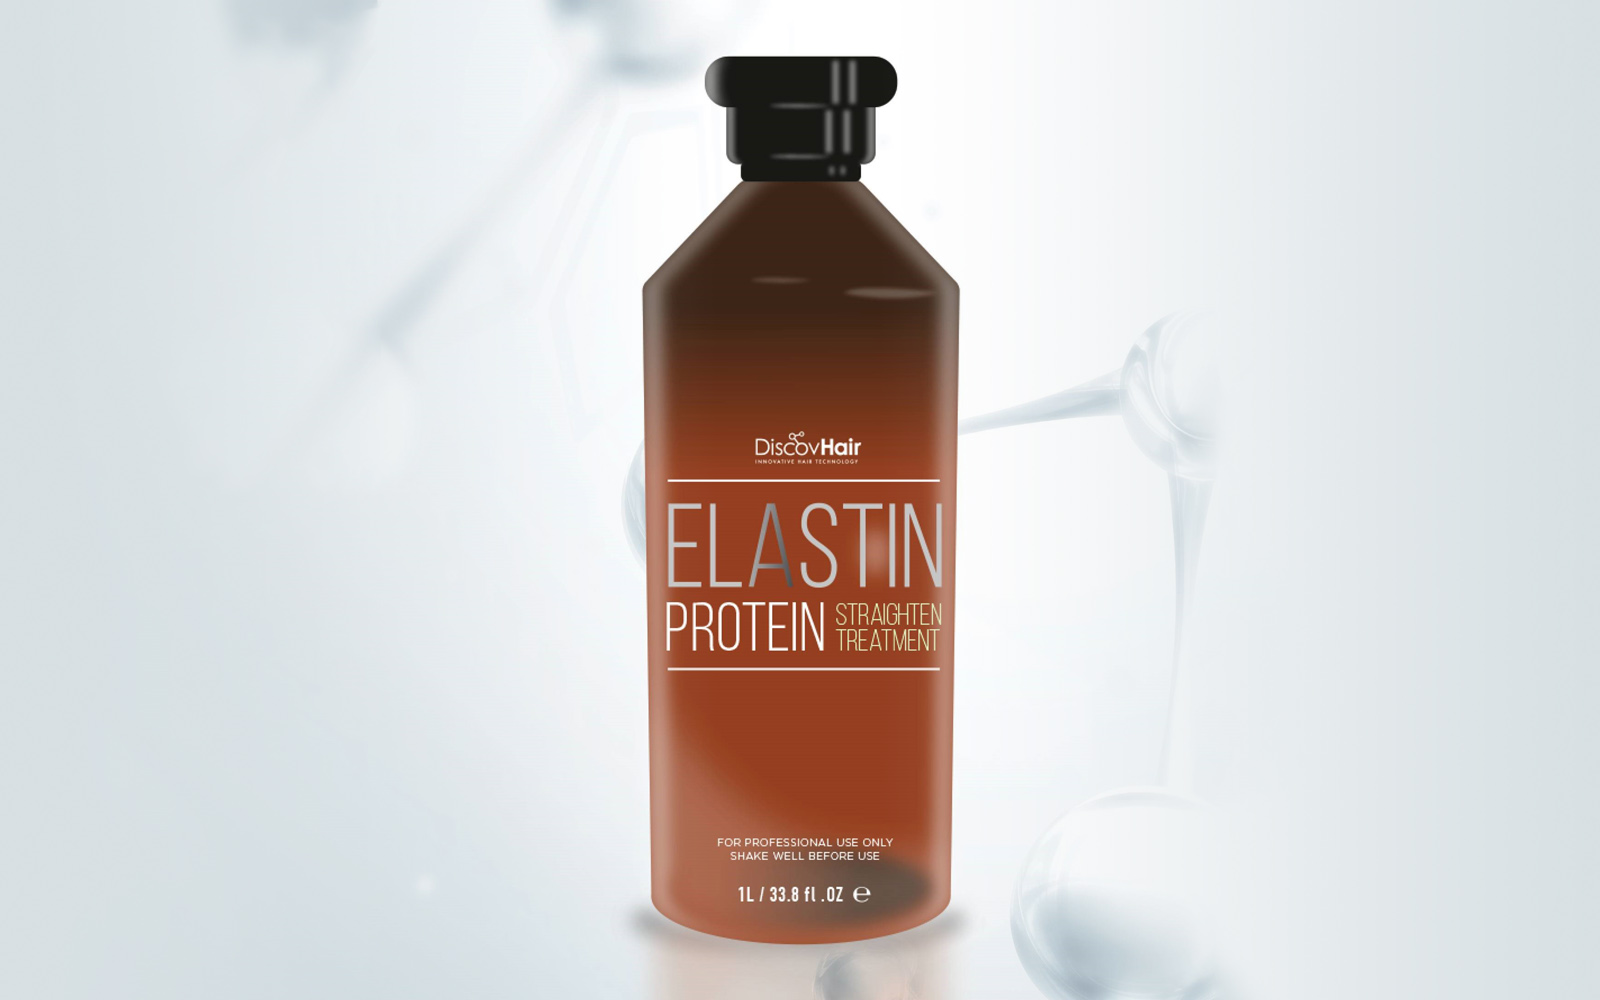 Elastin Protein Instructions